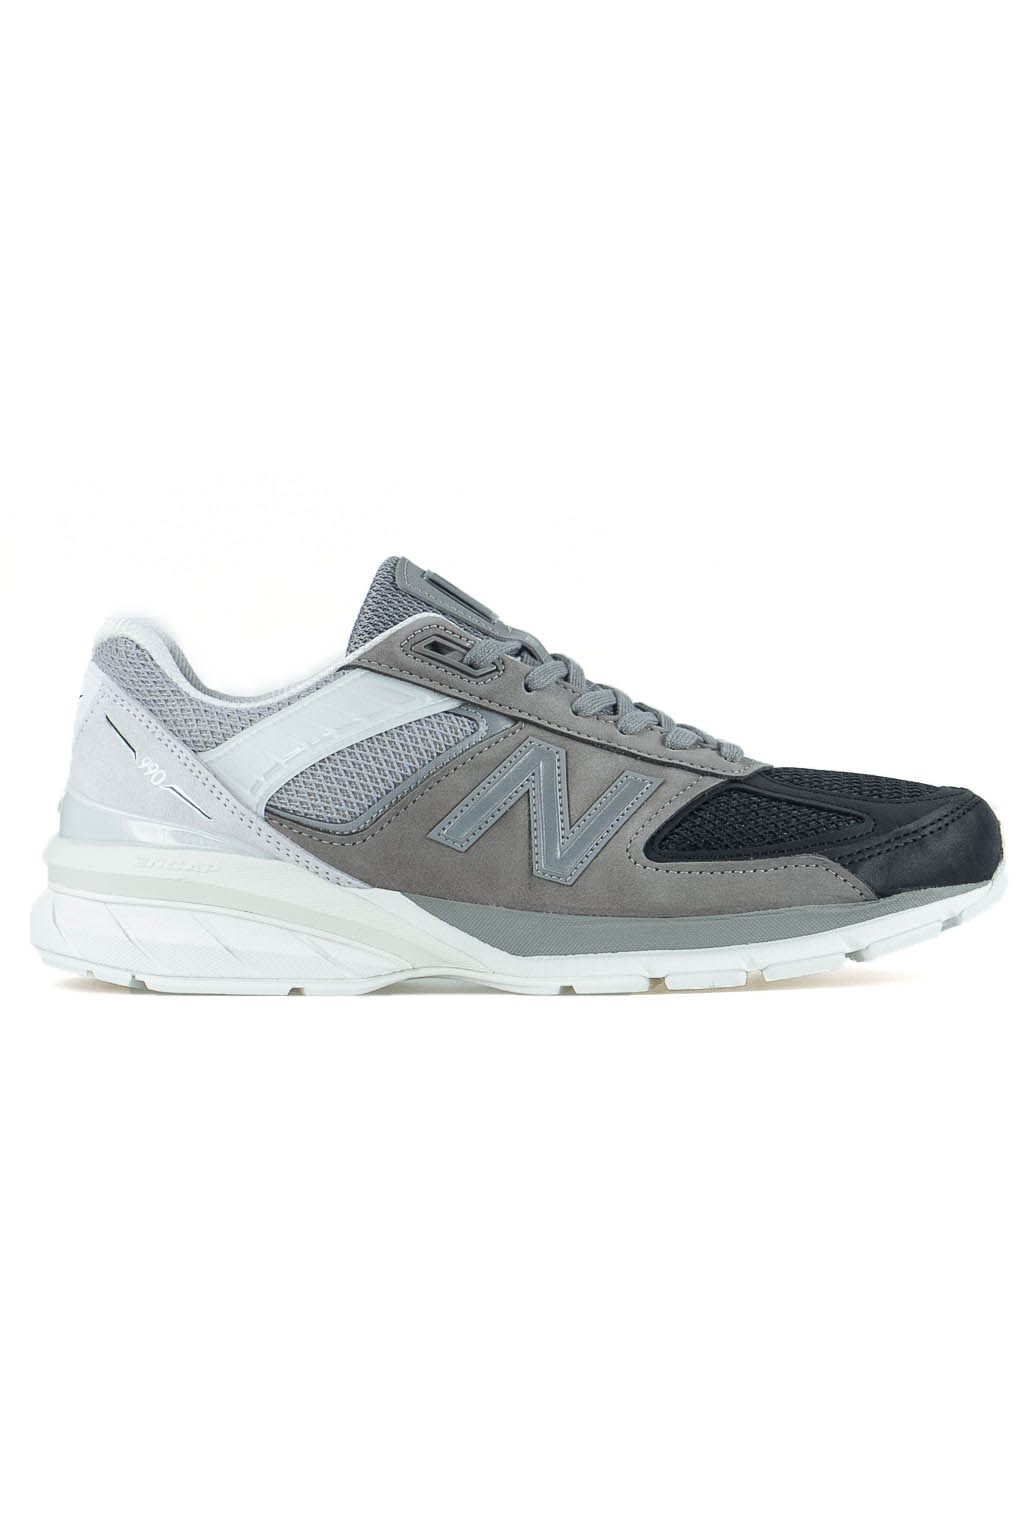 New Balance M990BM5 - Made in USA